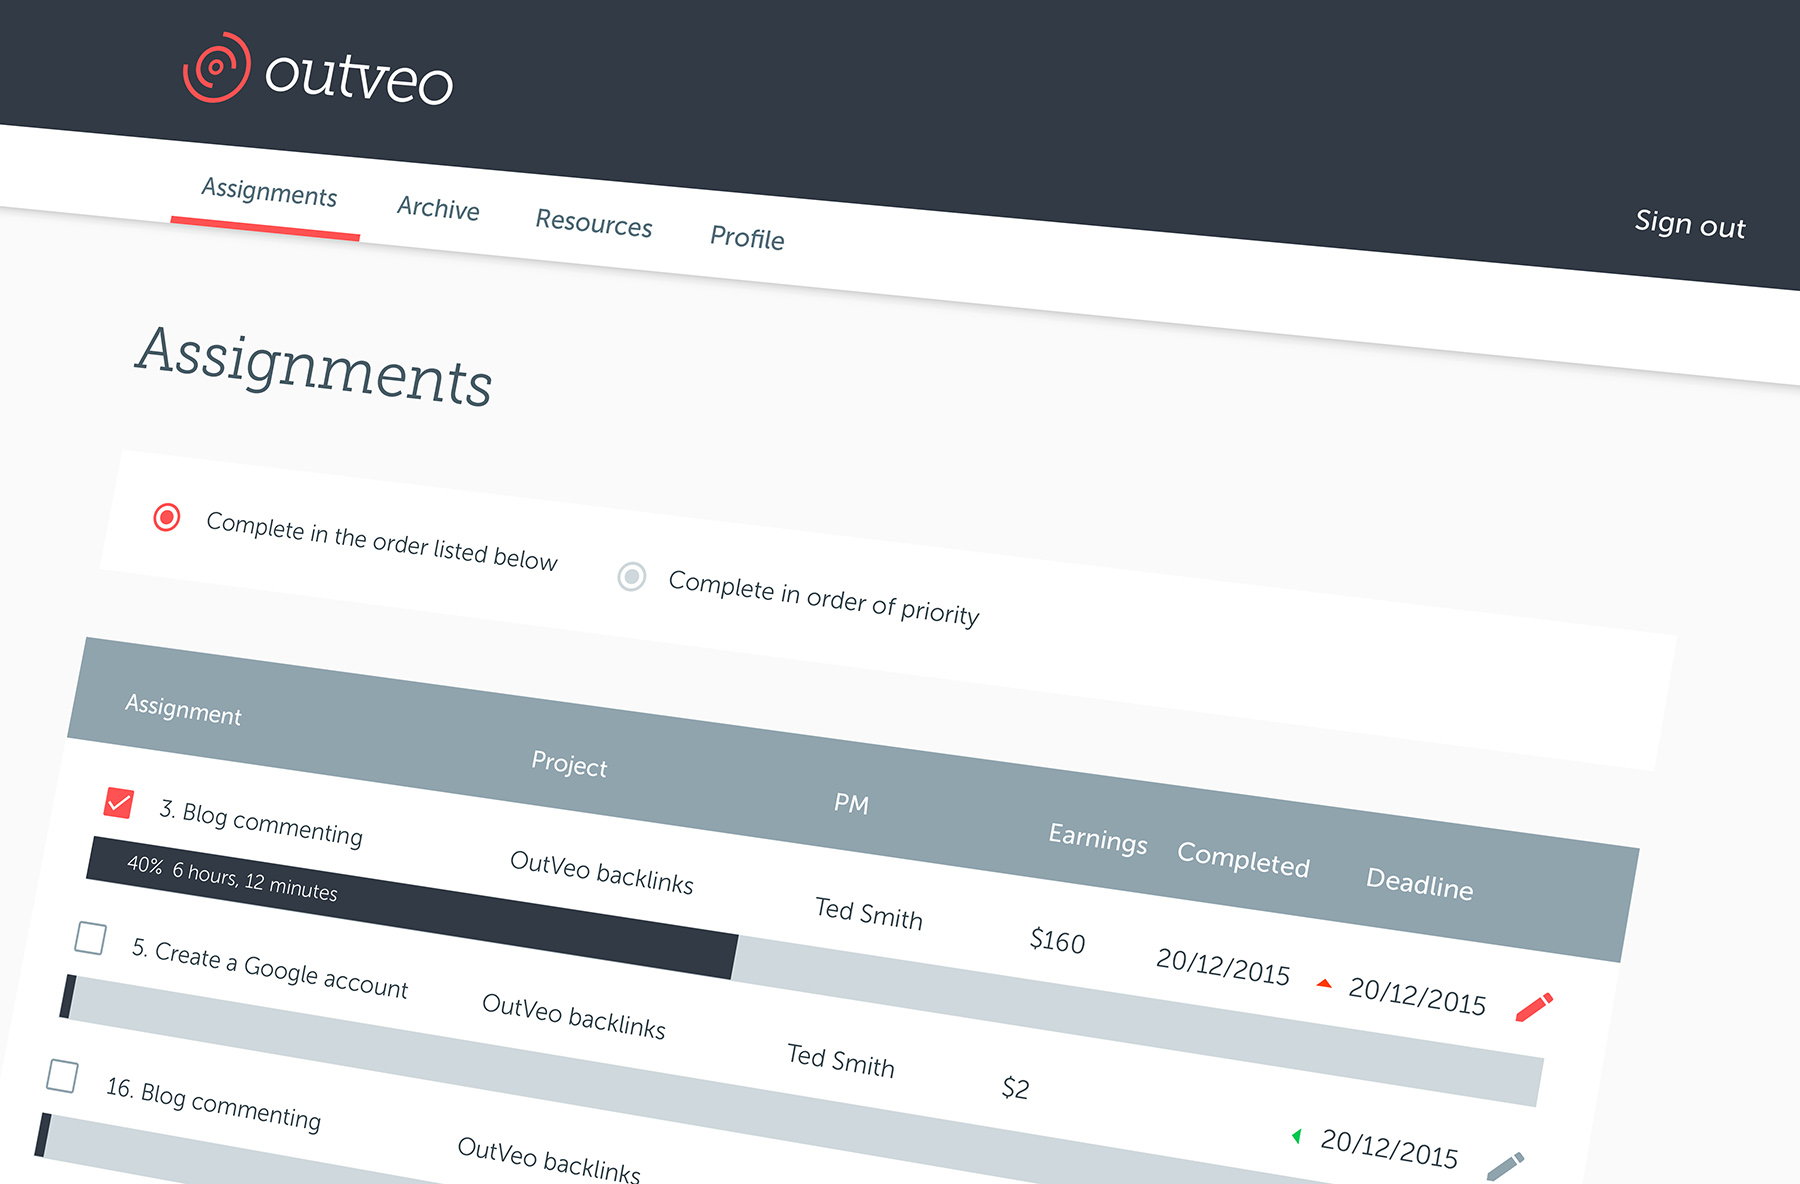 outveo UI members pages-3 small.jpg